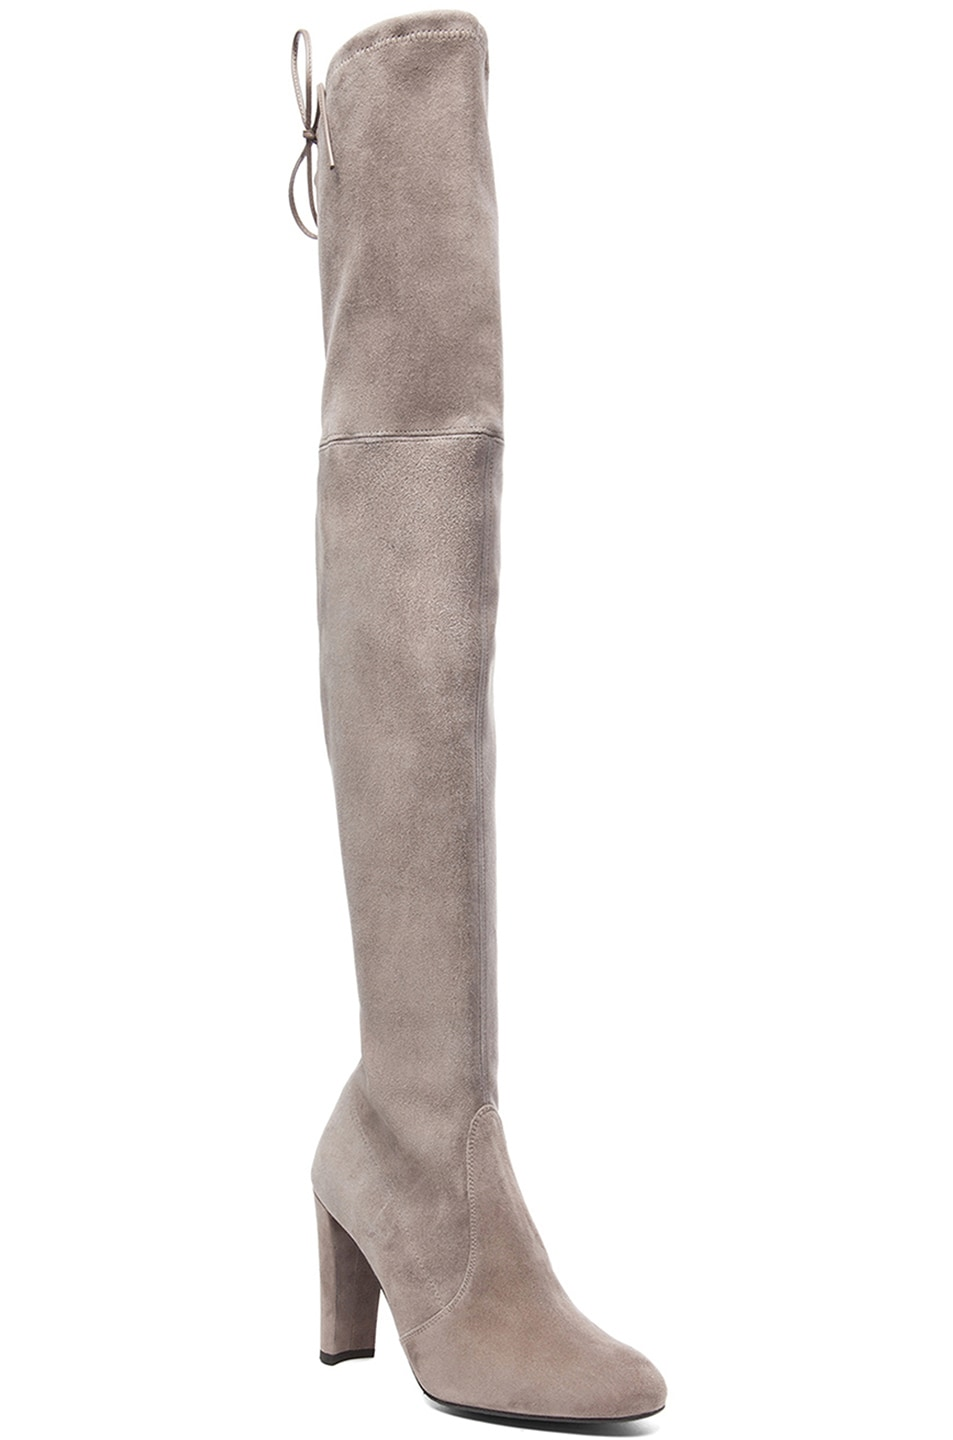 Image 2 of Stuart Weitzman Highland Suede Boots in Topo